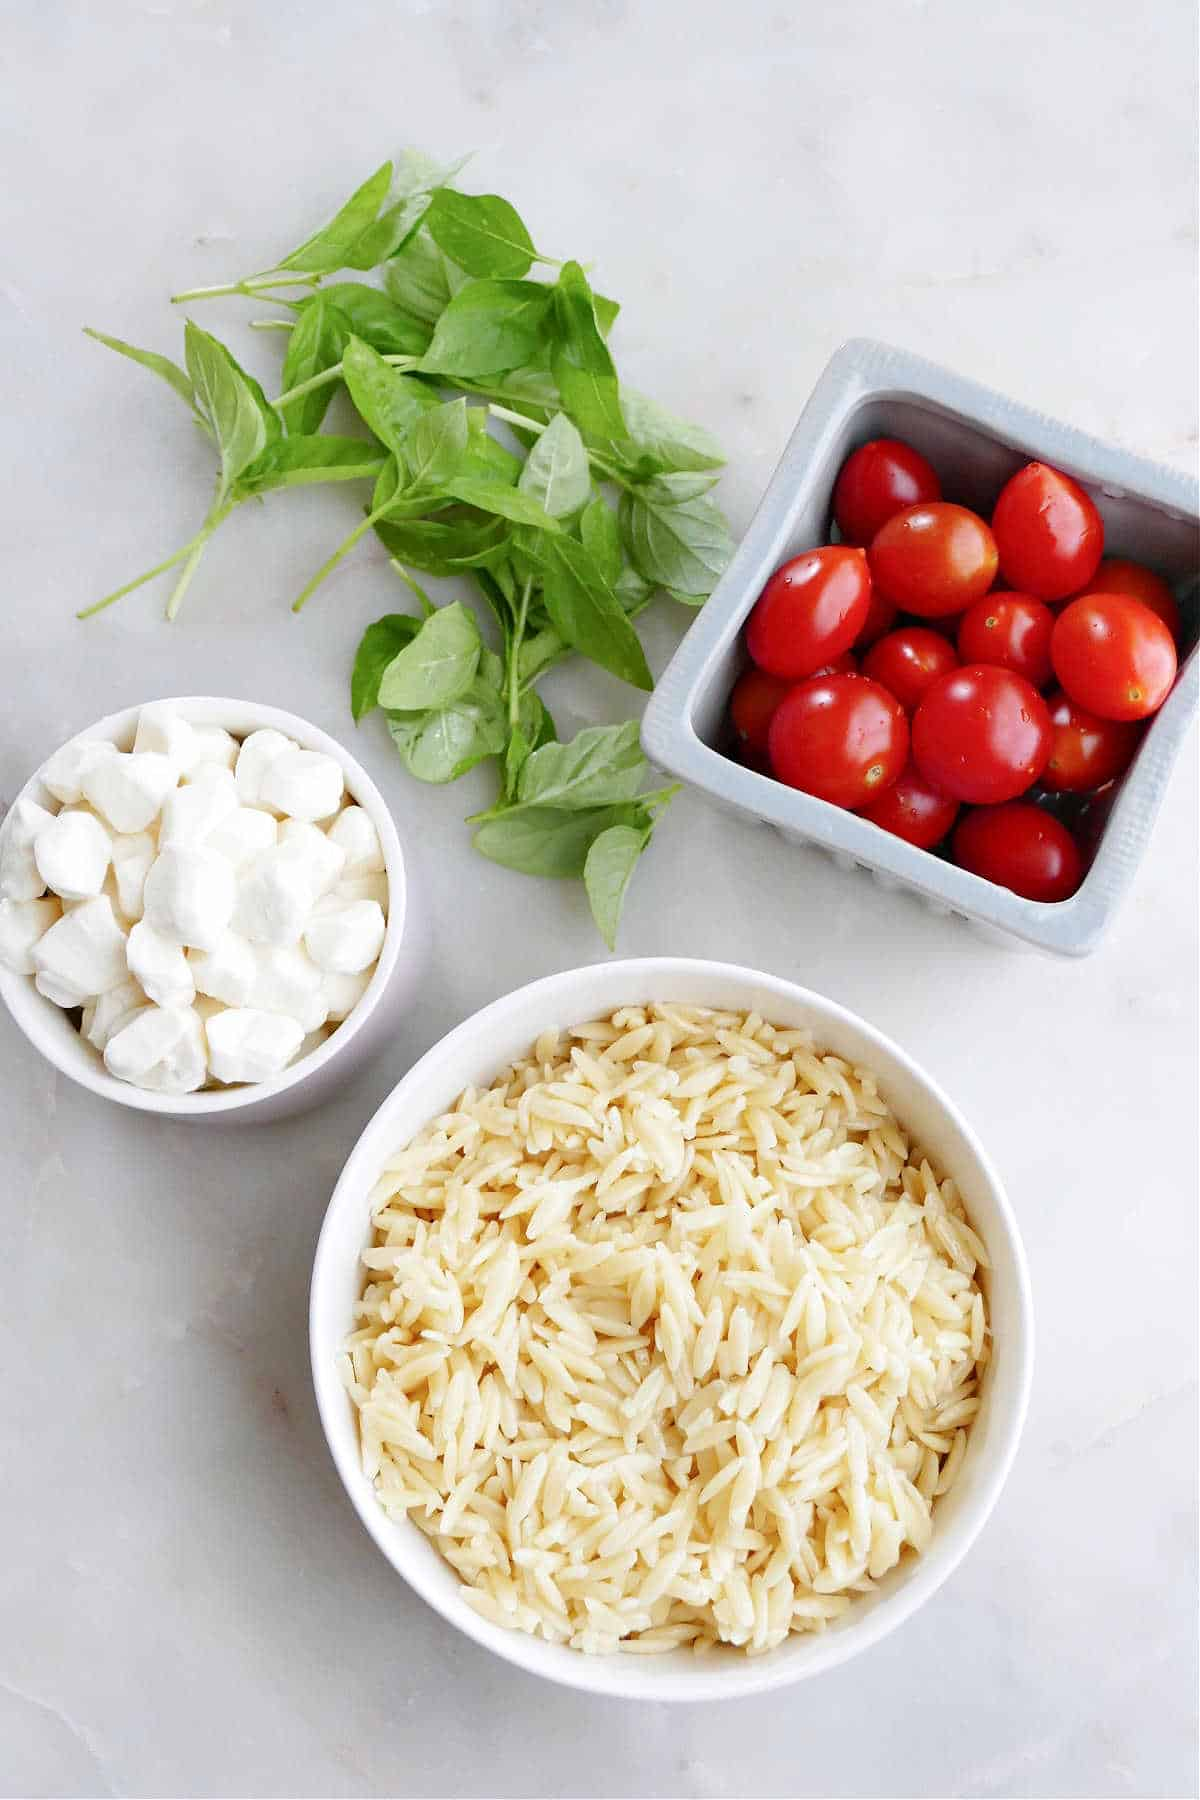 orzo pasta, mozzarella pearls, cherry tomatoes, and basil leaves on a counter